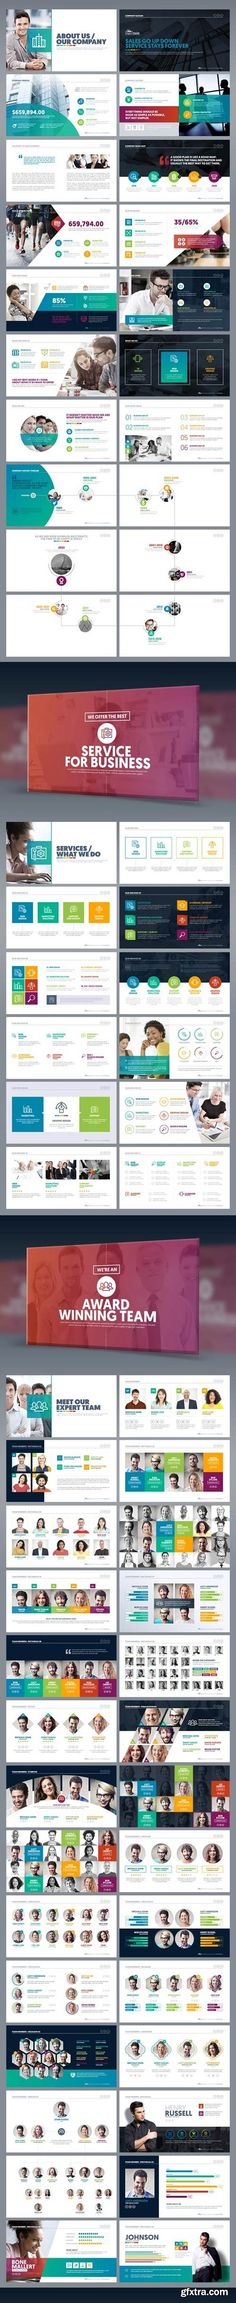 GraphicRiver - PowerPoint Presentation Bundle v04 - 18857878